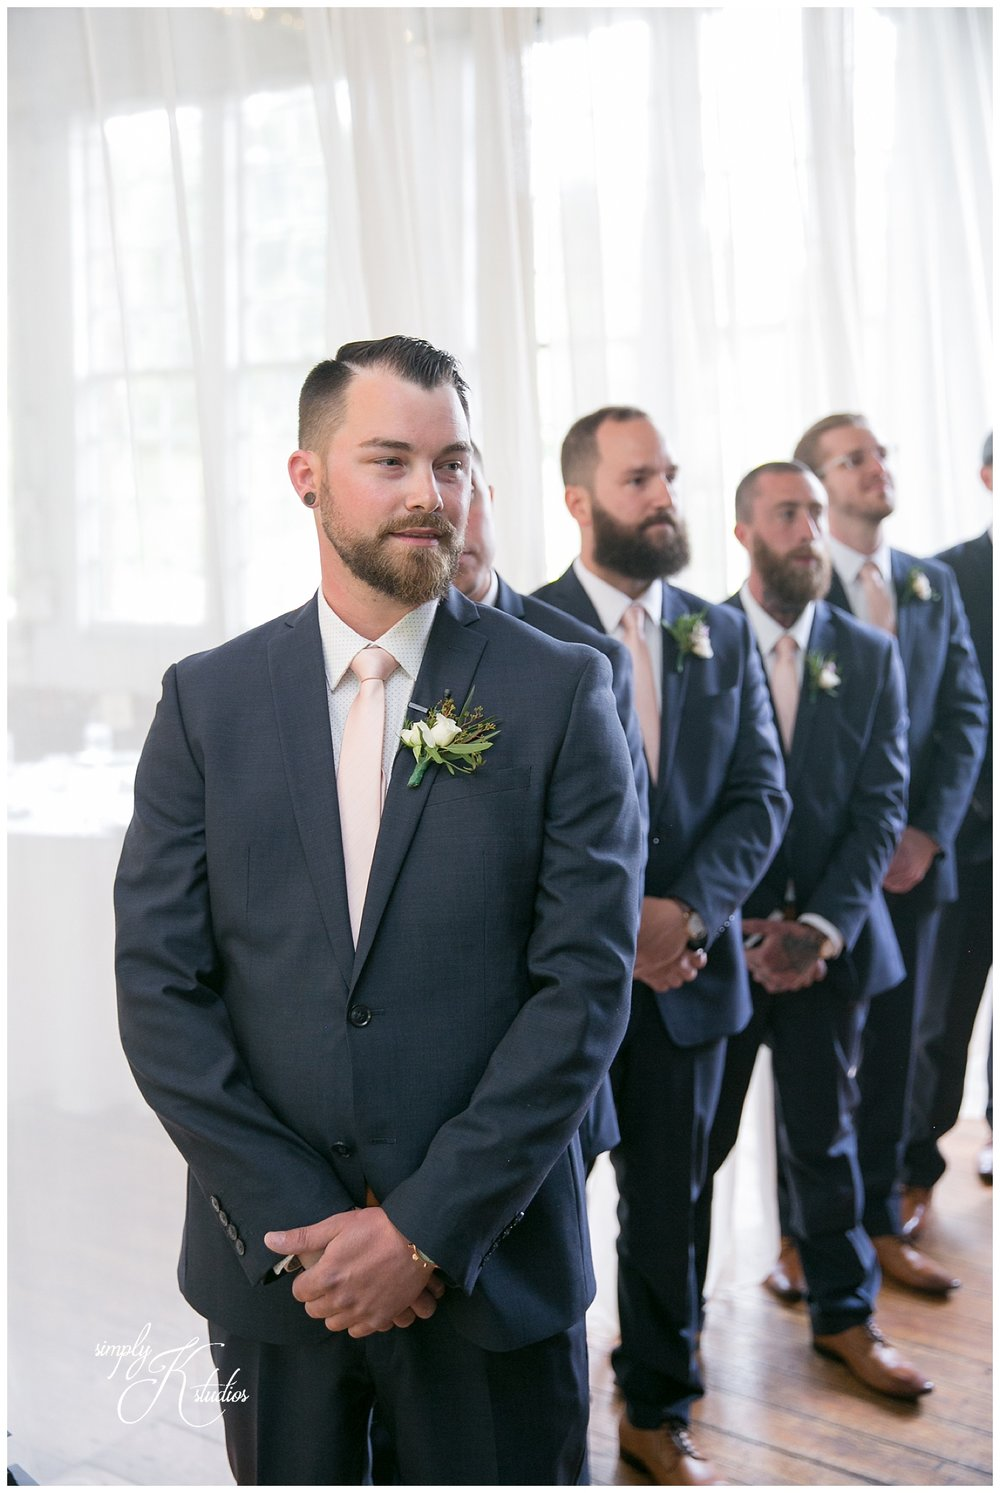 Groom at a Wedding.jpg